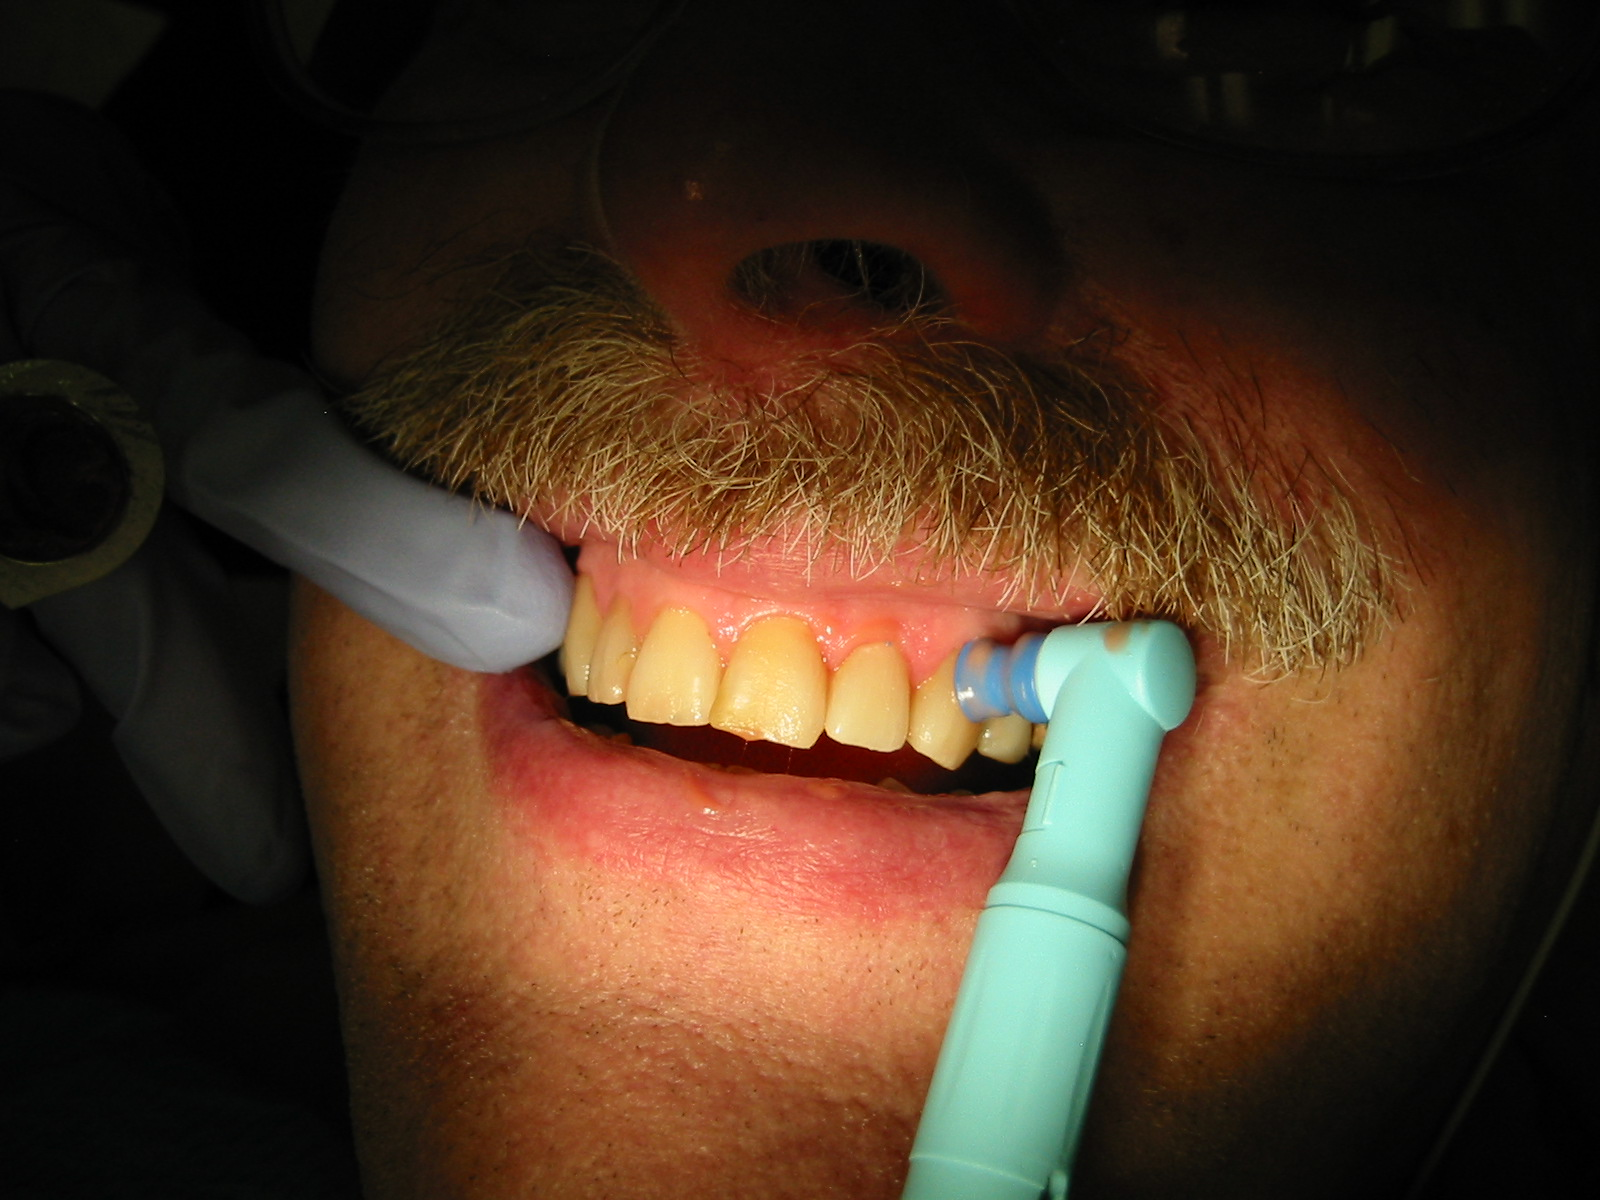 http://upload.wikimedia.org/wikipedia/commons/2/28/Tooth_polishing_9332.JPG